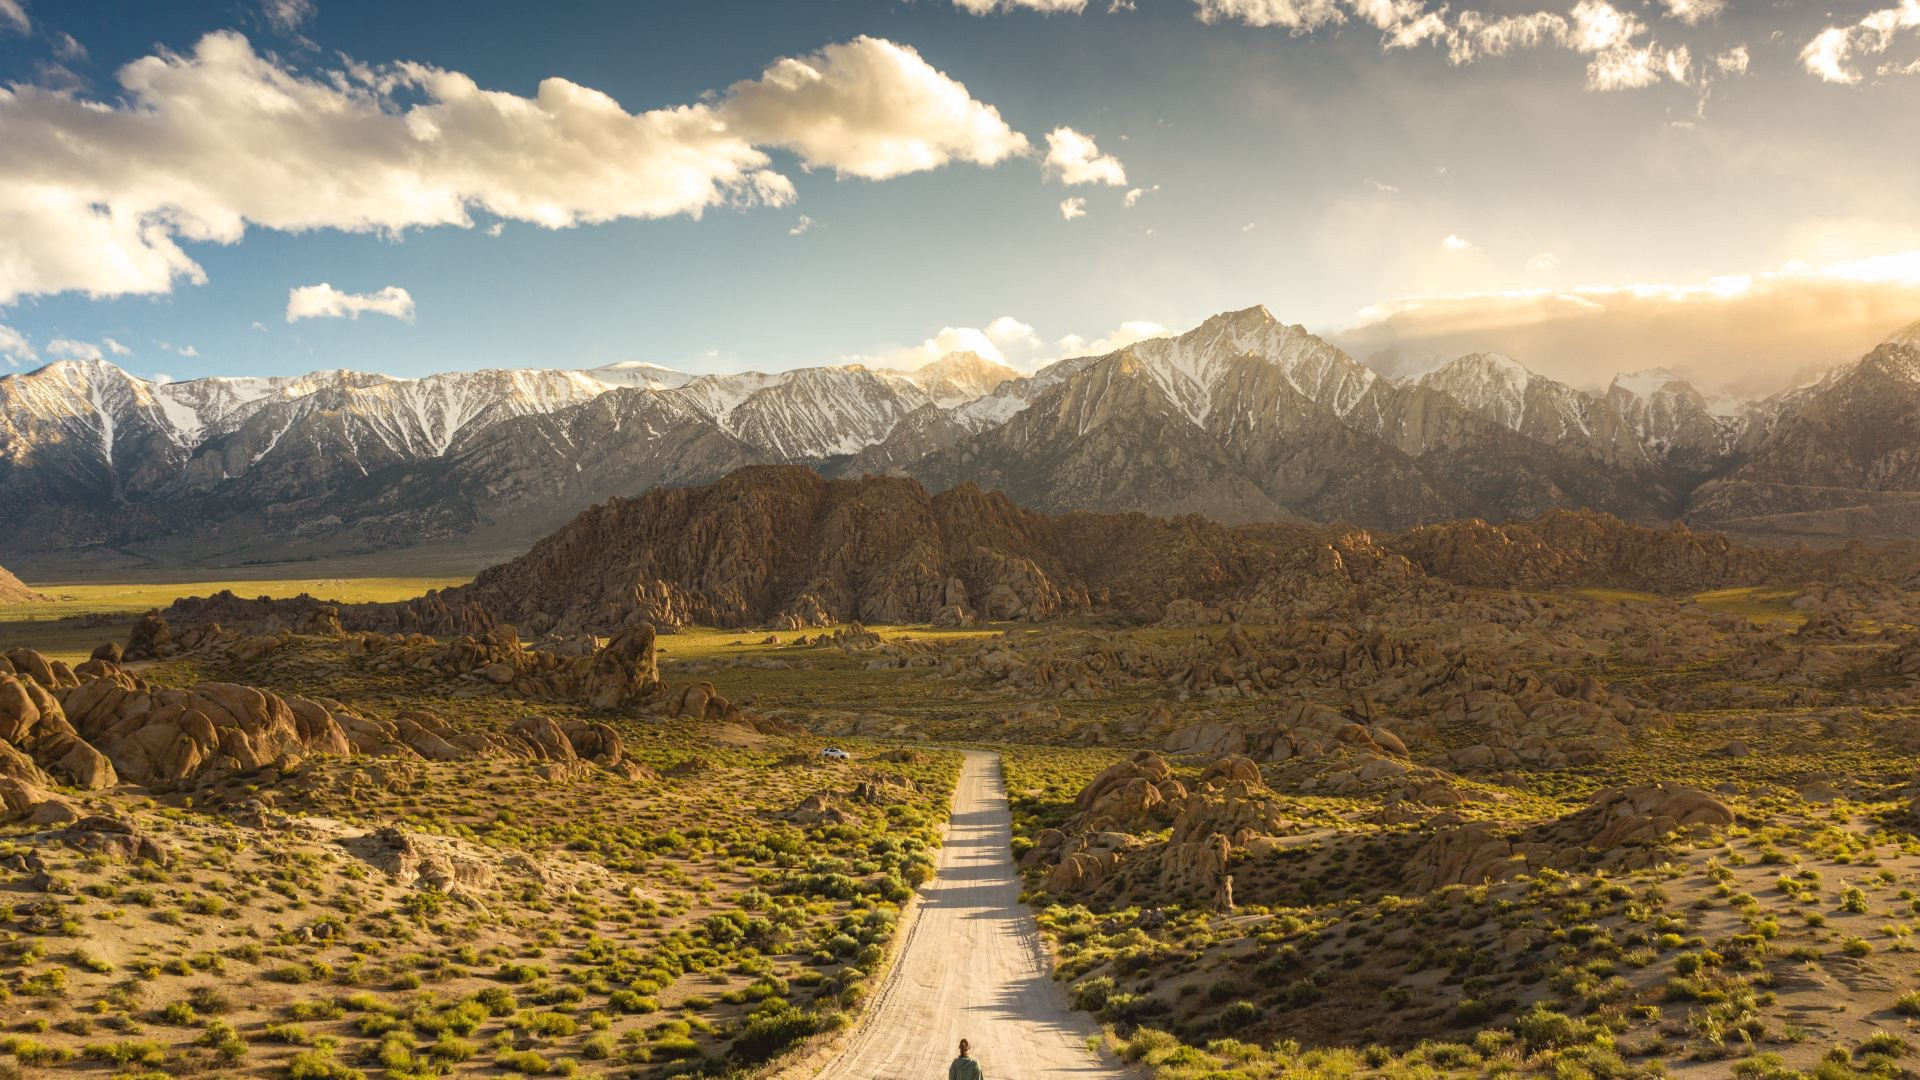 Lonely person walking on a pathway in alabama hills in california with mount whitney